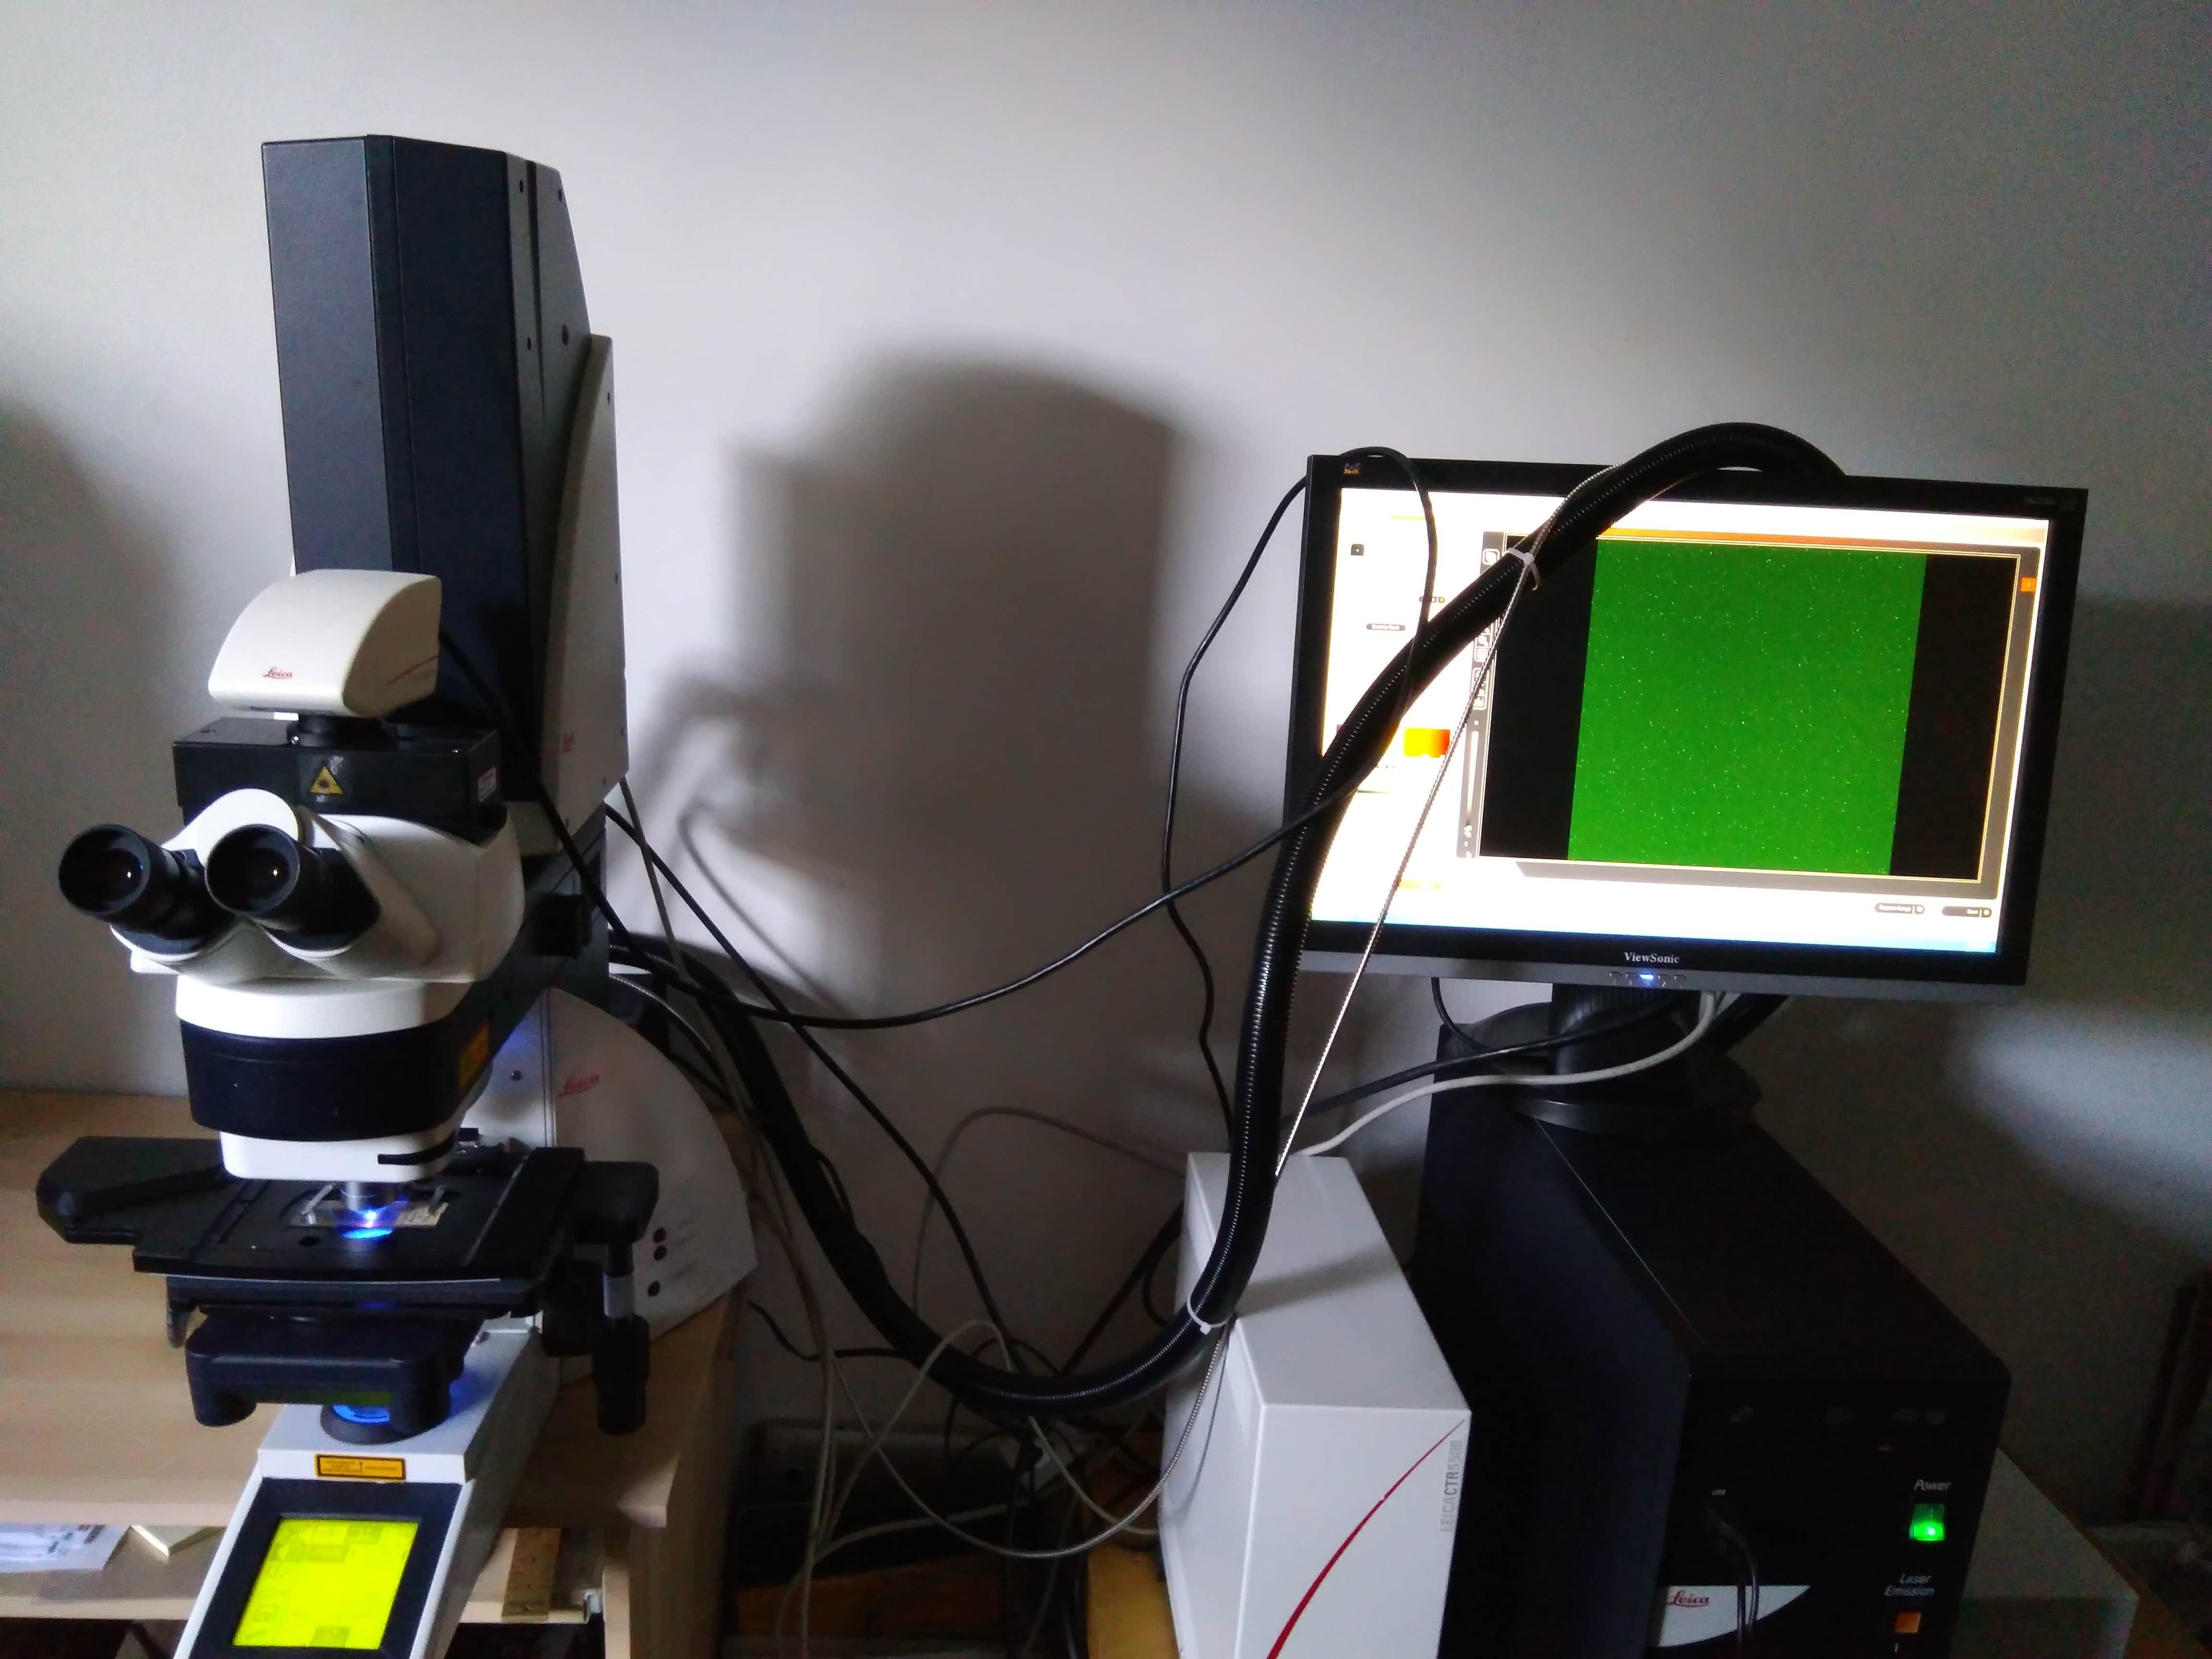 Leica DM 5500 Q Confocal Spectral Detector TCS SPE Laser Scanning Microscope